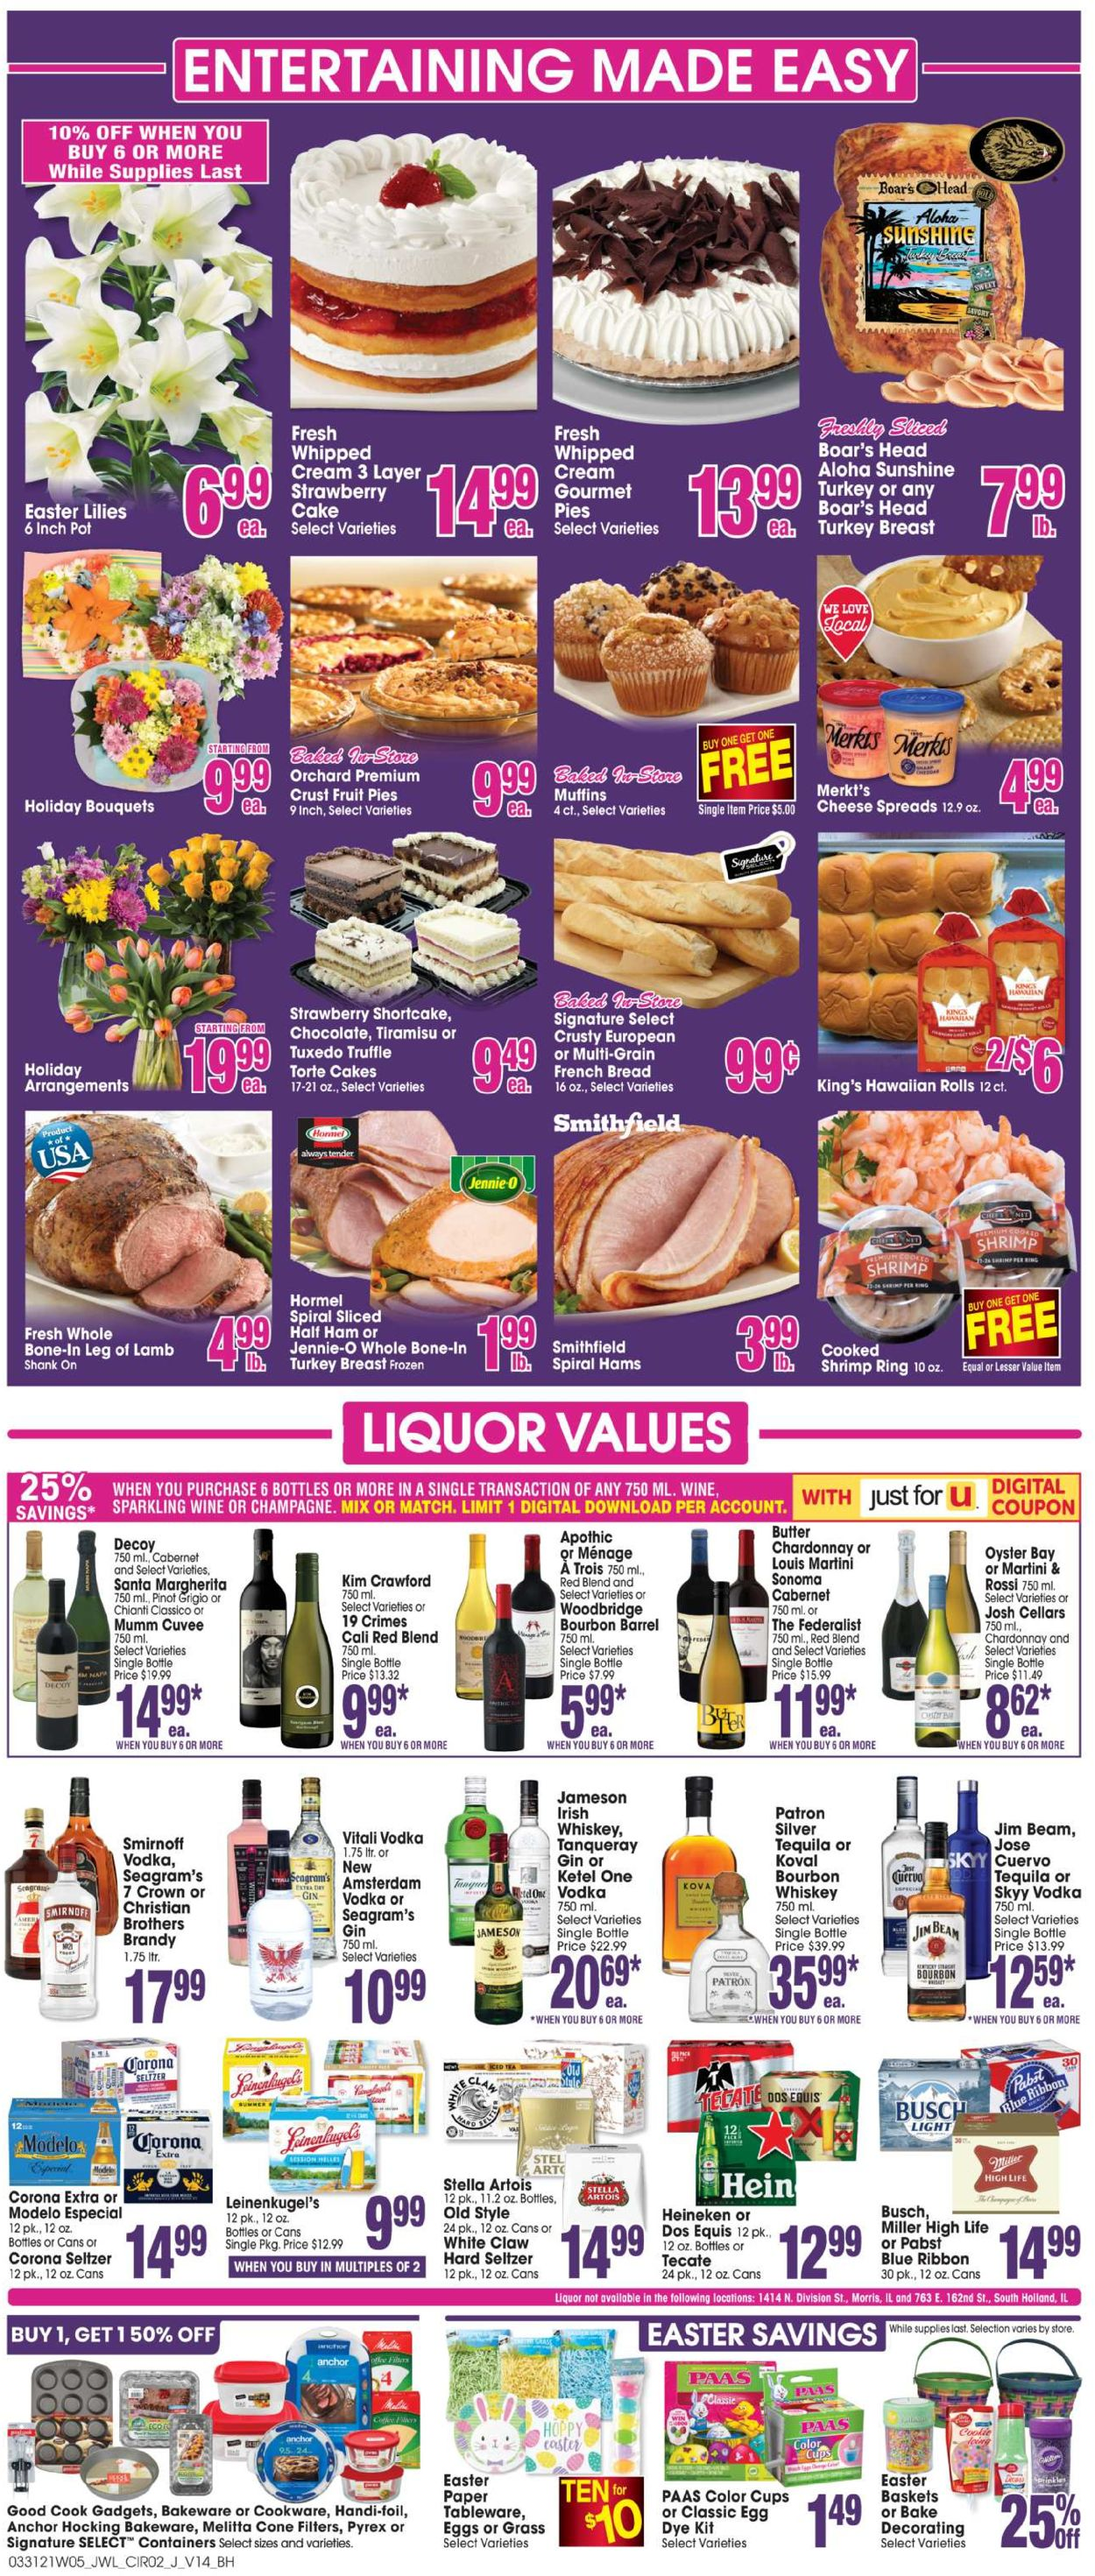 Catalogue Jewel Osco - Easter 2021 ad from 03/31/2021